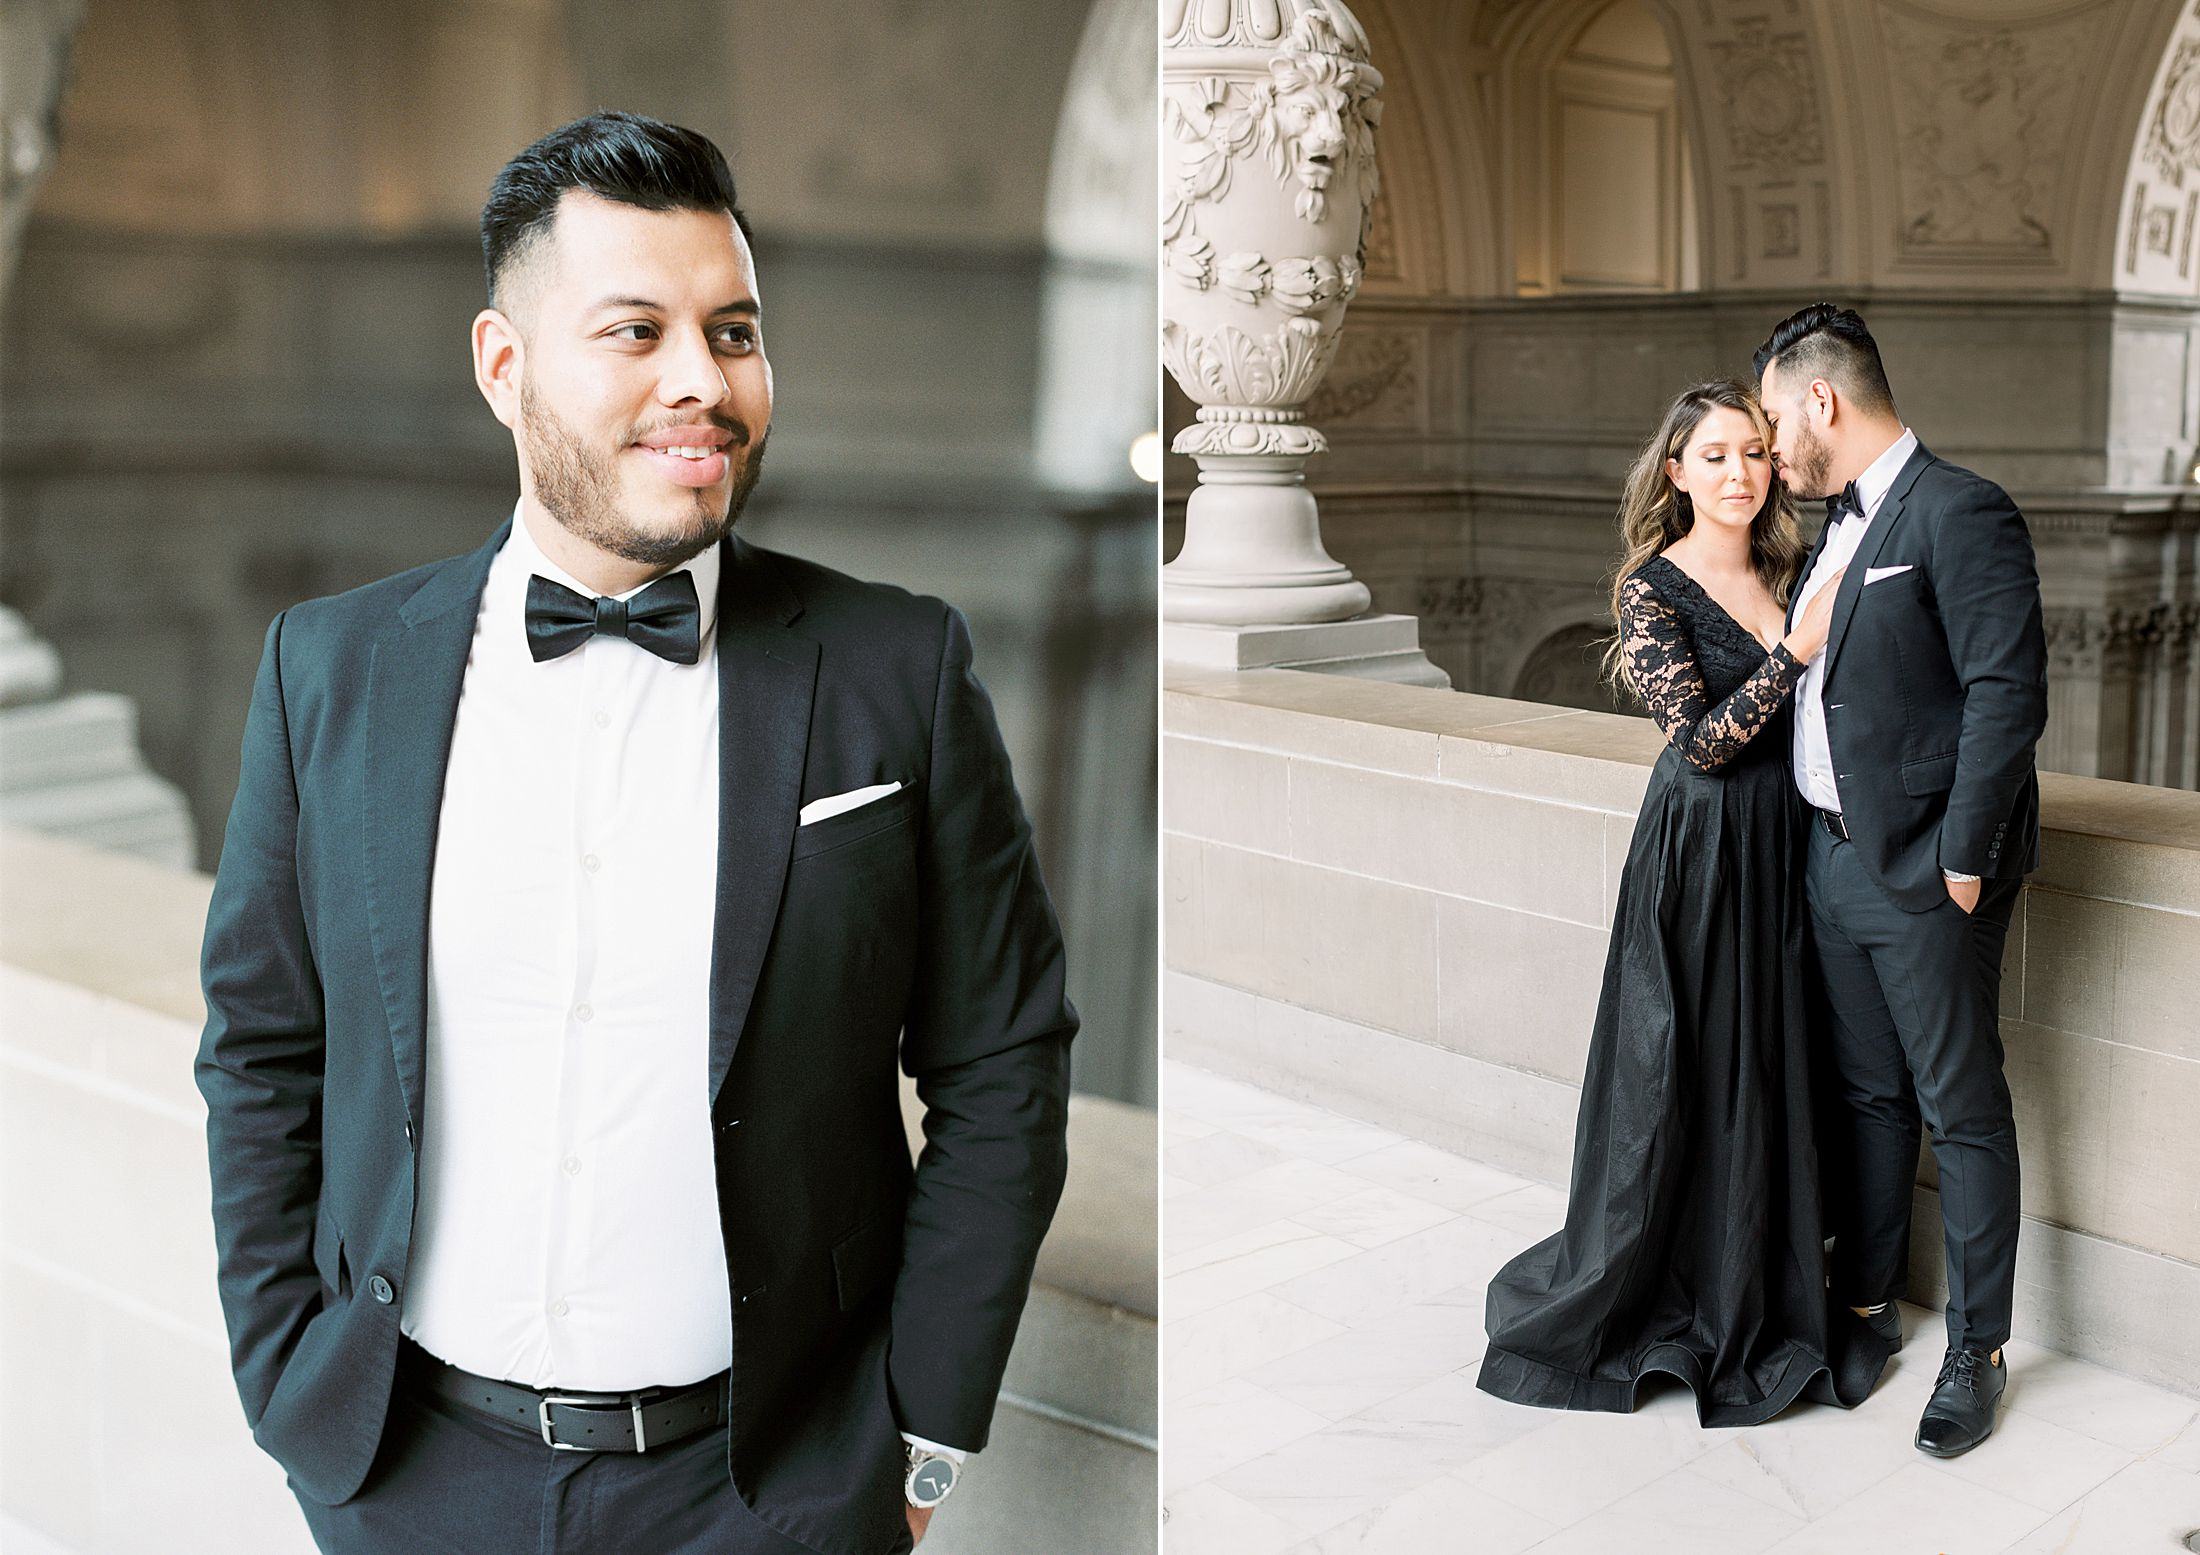 SF City Hall Black Tie Engagement and Palace of Fine Arts Engagement - Ashley Baumgartner - Esmeralda and Jesus - SF Wedding Photographer_0006.jpg